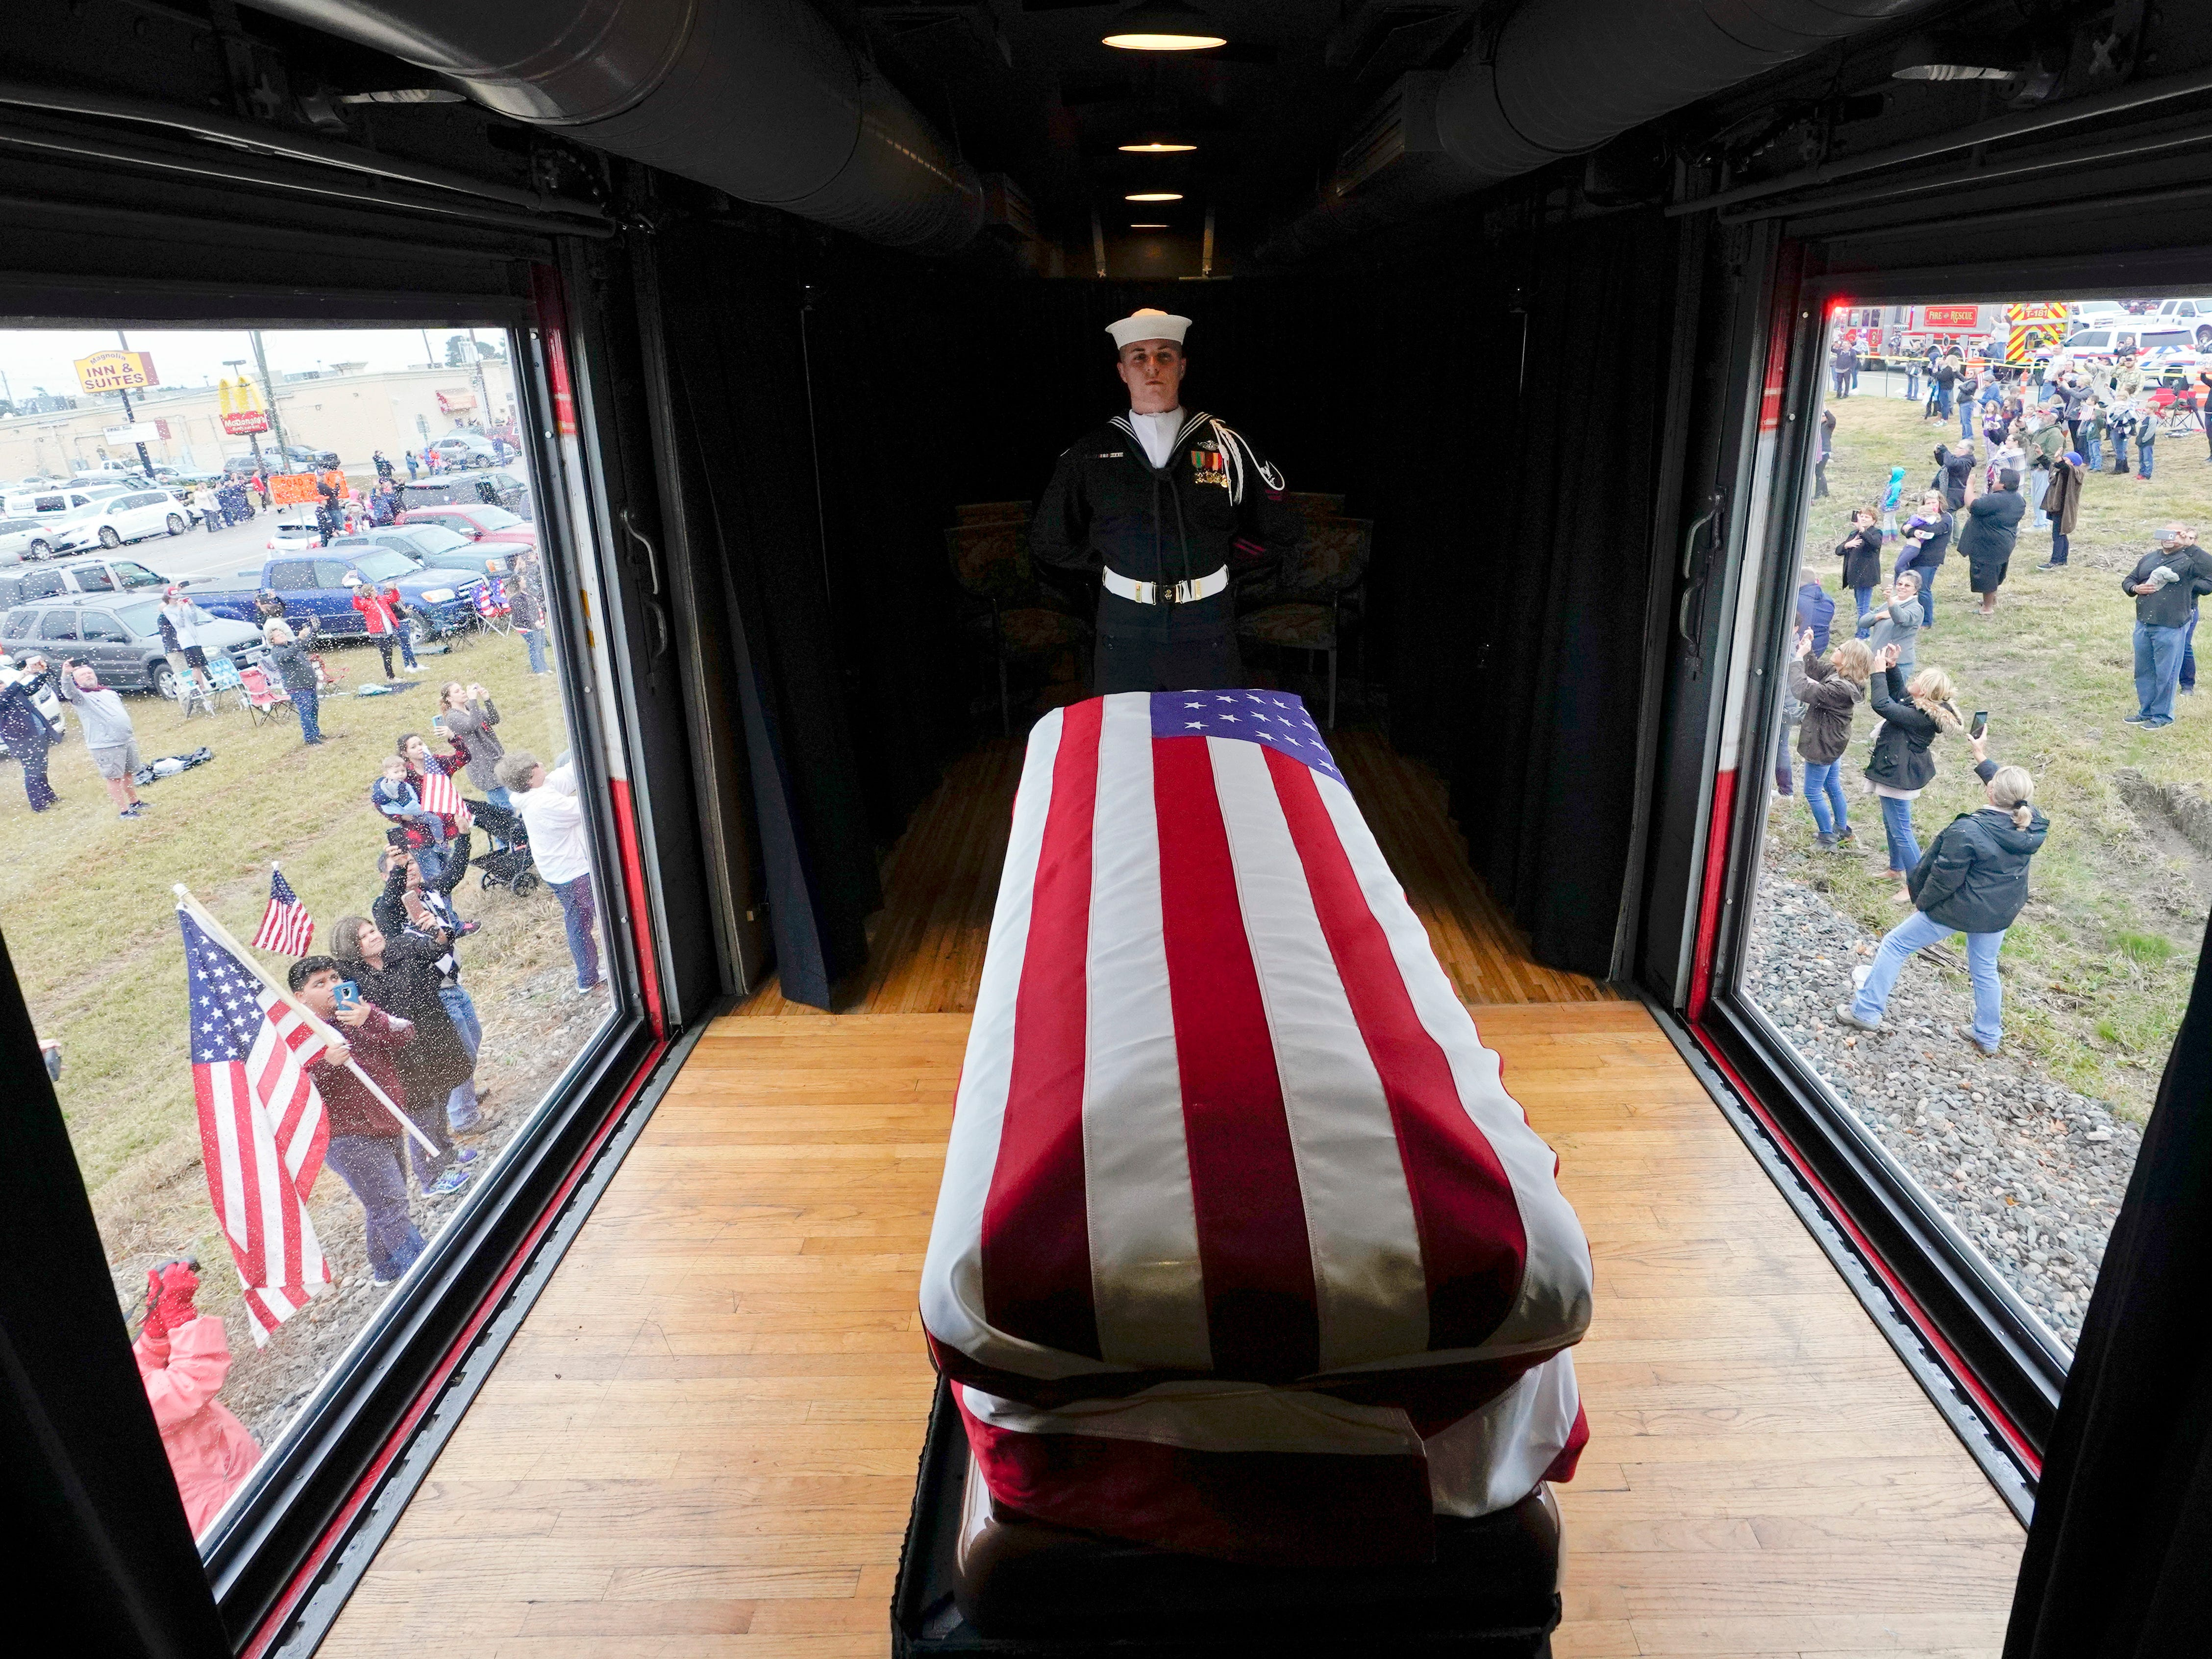 The flag-draped casket of former President George H.W. Bush passes through Magnolia, Texas, Thursday, Dec. 6, 2018, along the route from Spring to College Station, Texas.